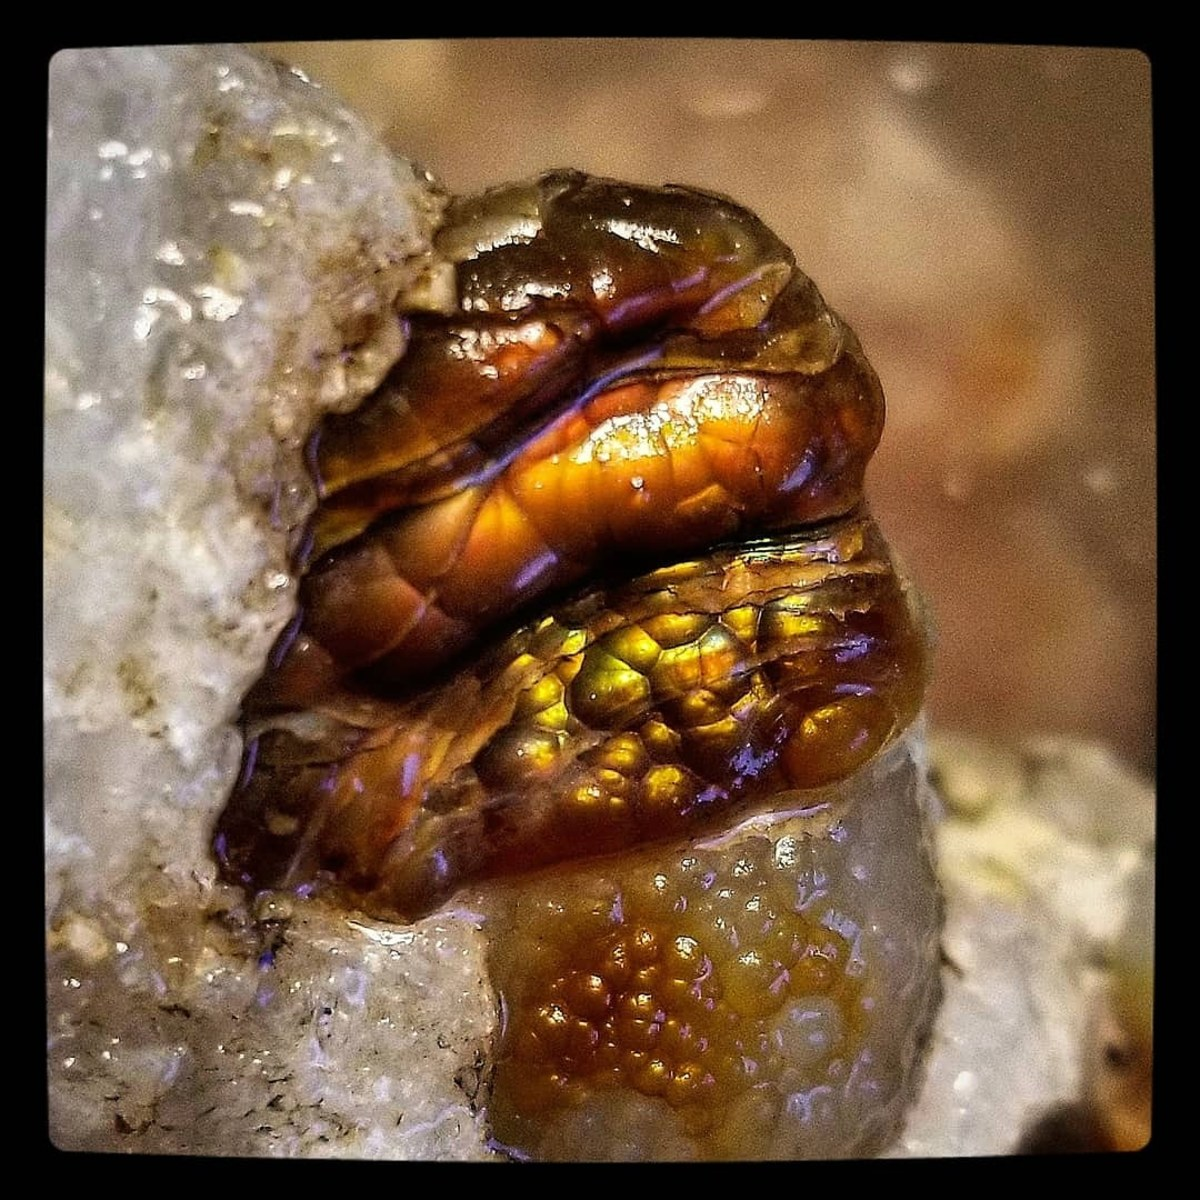 """I have here seen the power and glory of the Supreme Being. The majesty of His handiwork is in that testimony of the rocks"" ~ Lafayette H. Bunnell  ~ American physician, author, and explorer - Arizona fire agate"